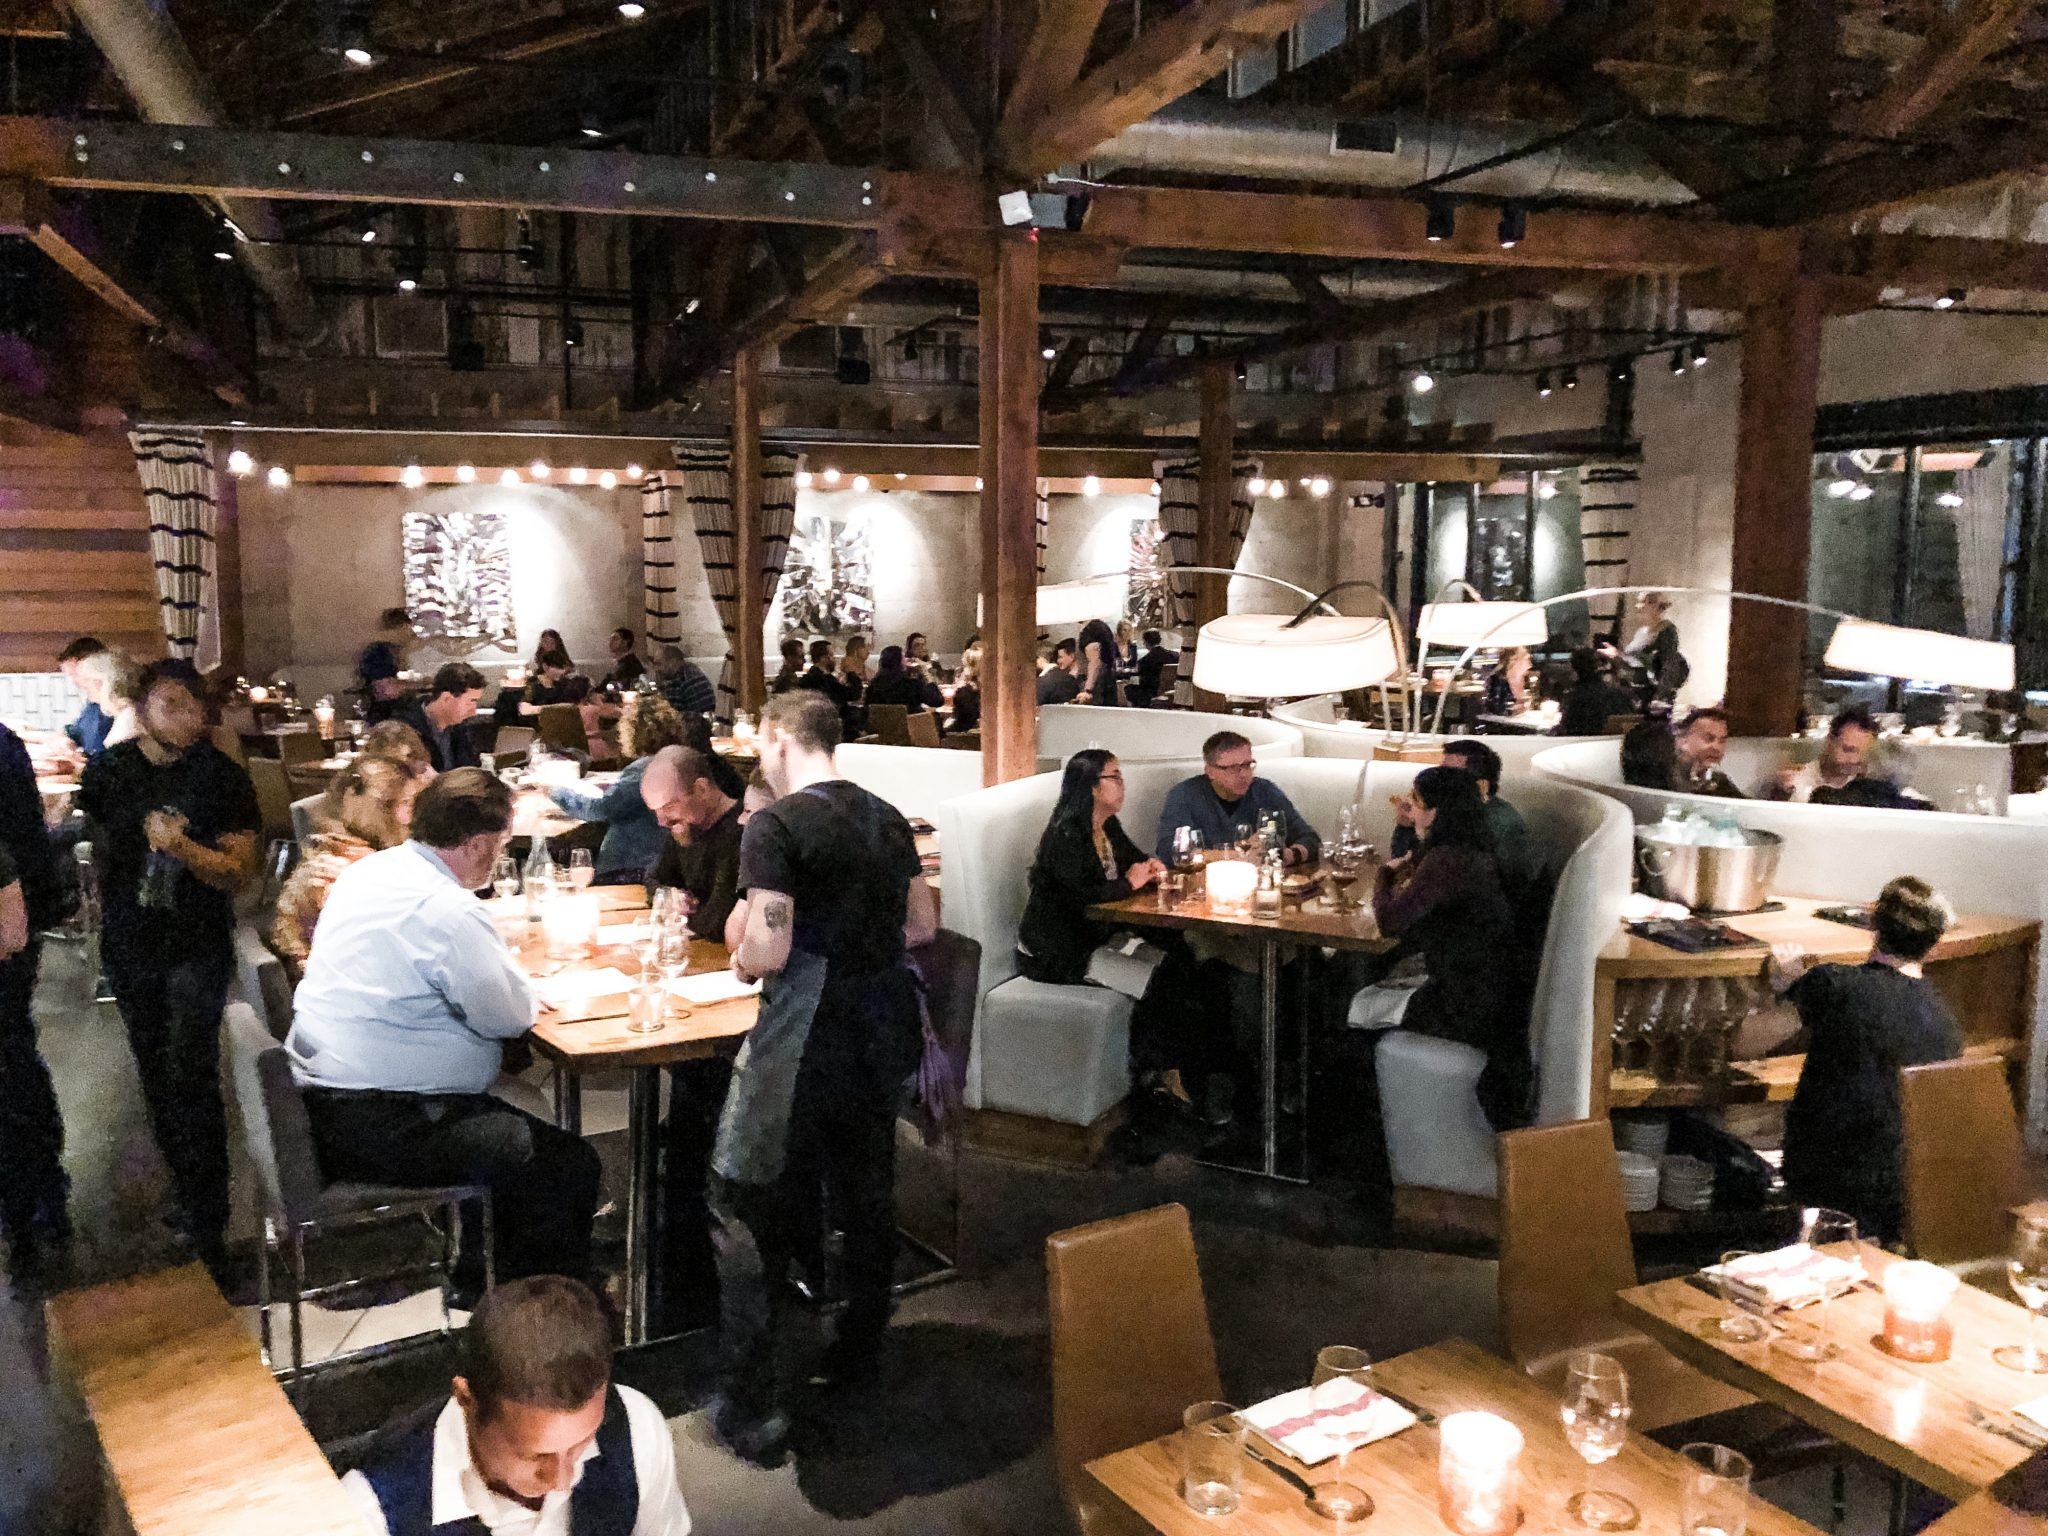 Juniper and Ivy in San Diego is the perfect date-night spot for modern cuisine in a fun atmosphere